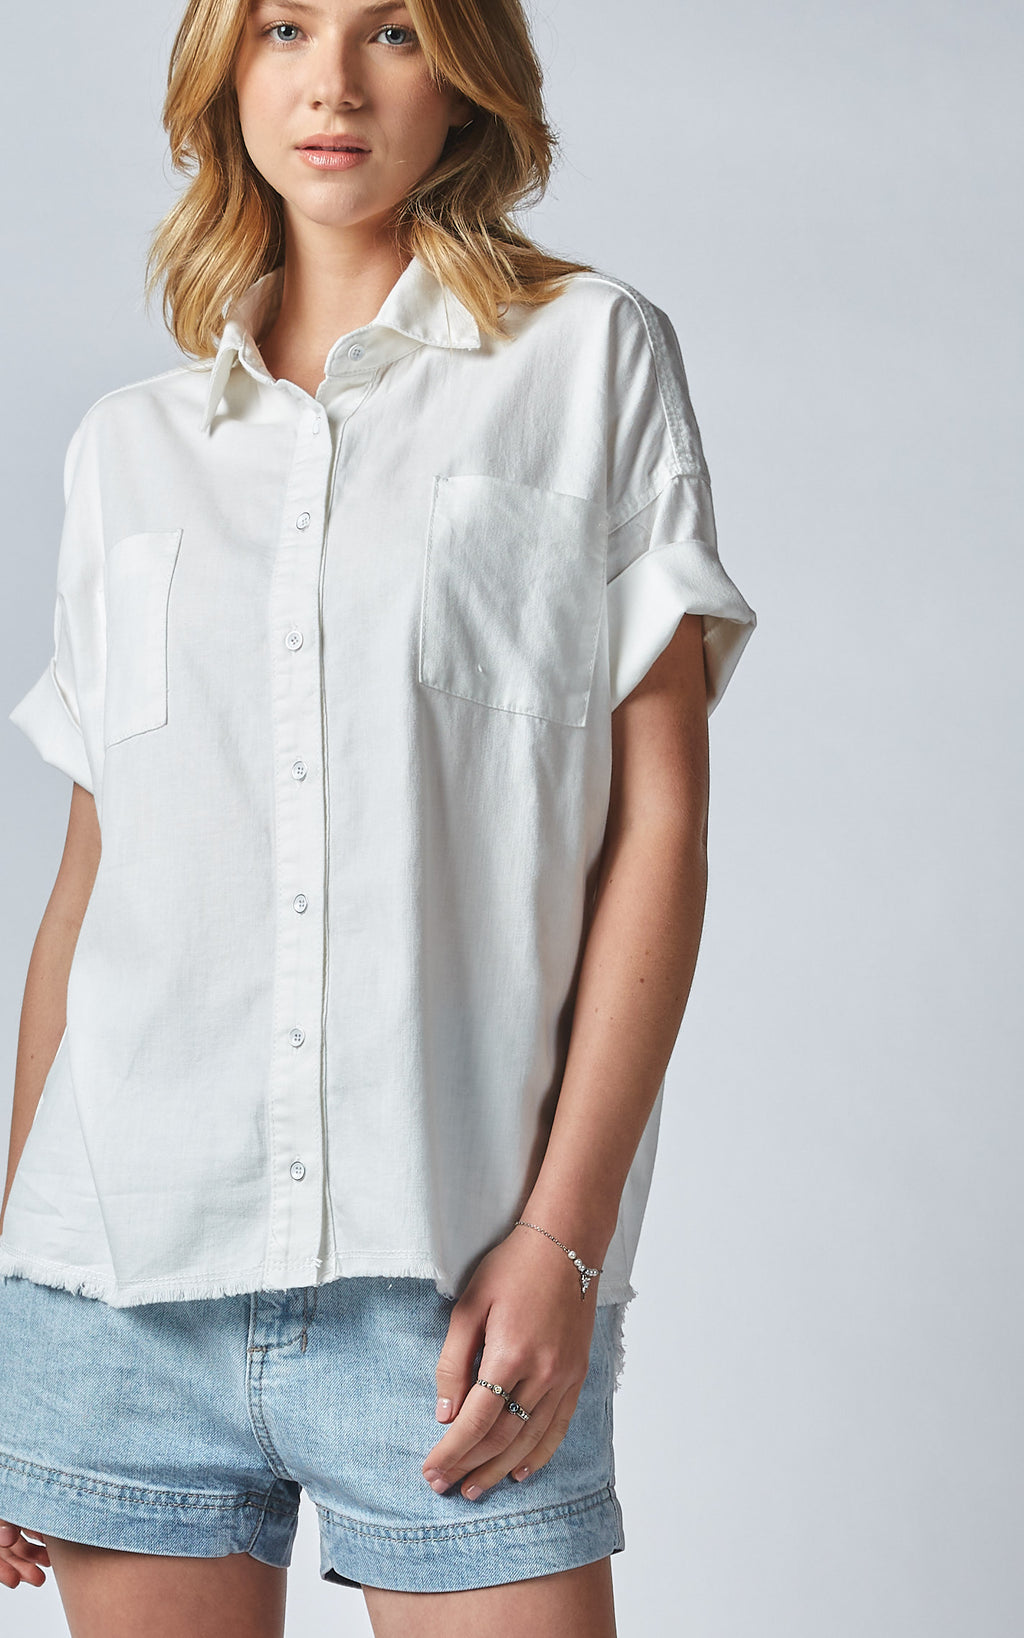 KATKA WHITE LINEN DENIM SHIRT